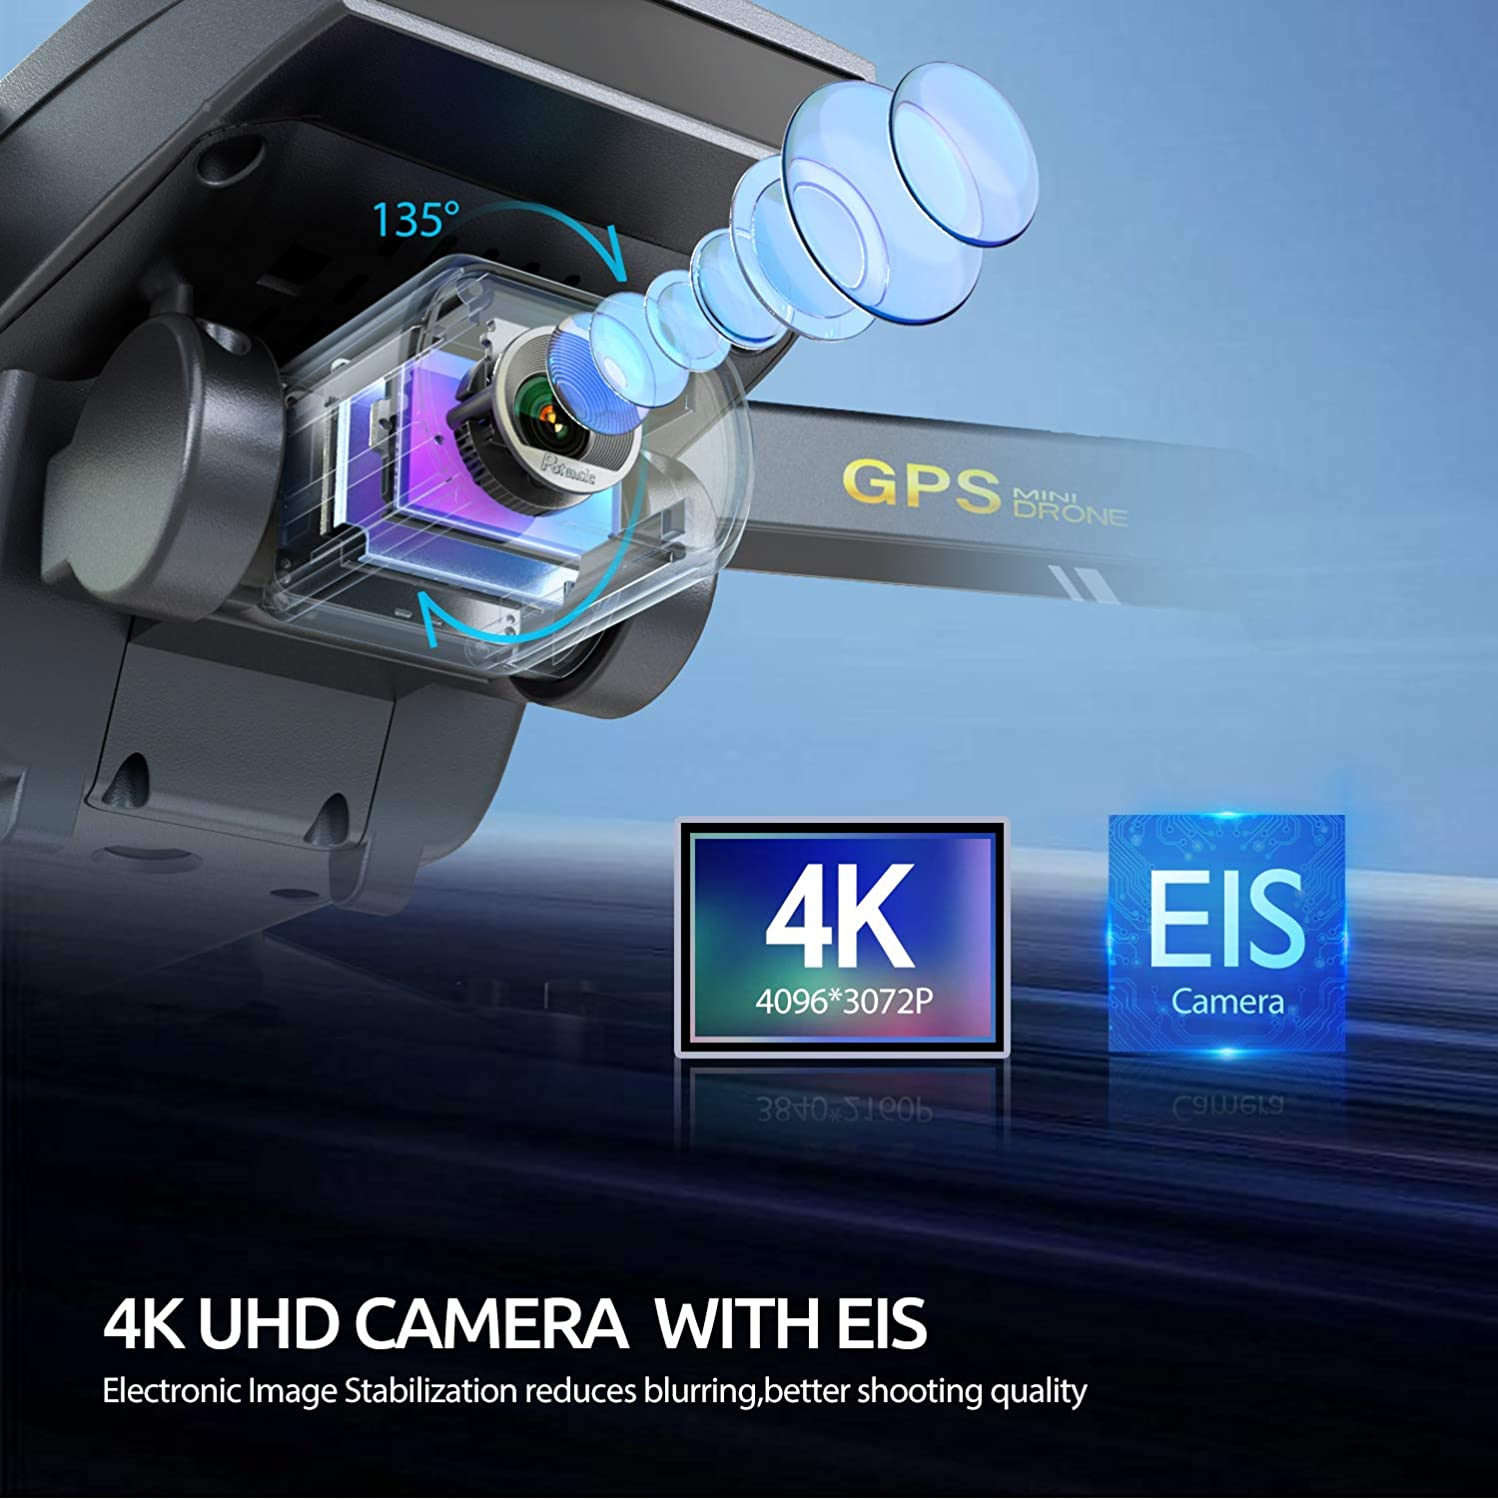 Tomzon D40 4K UHD Camera With EIS